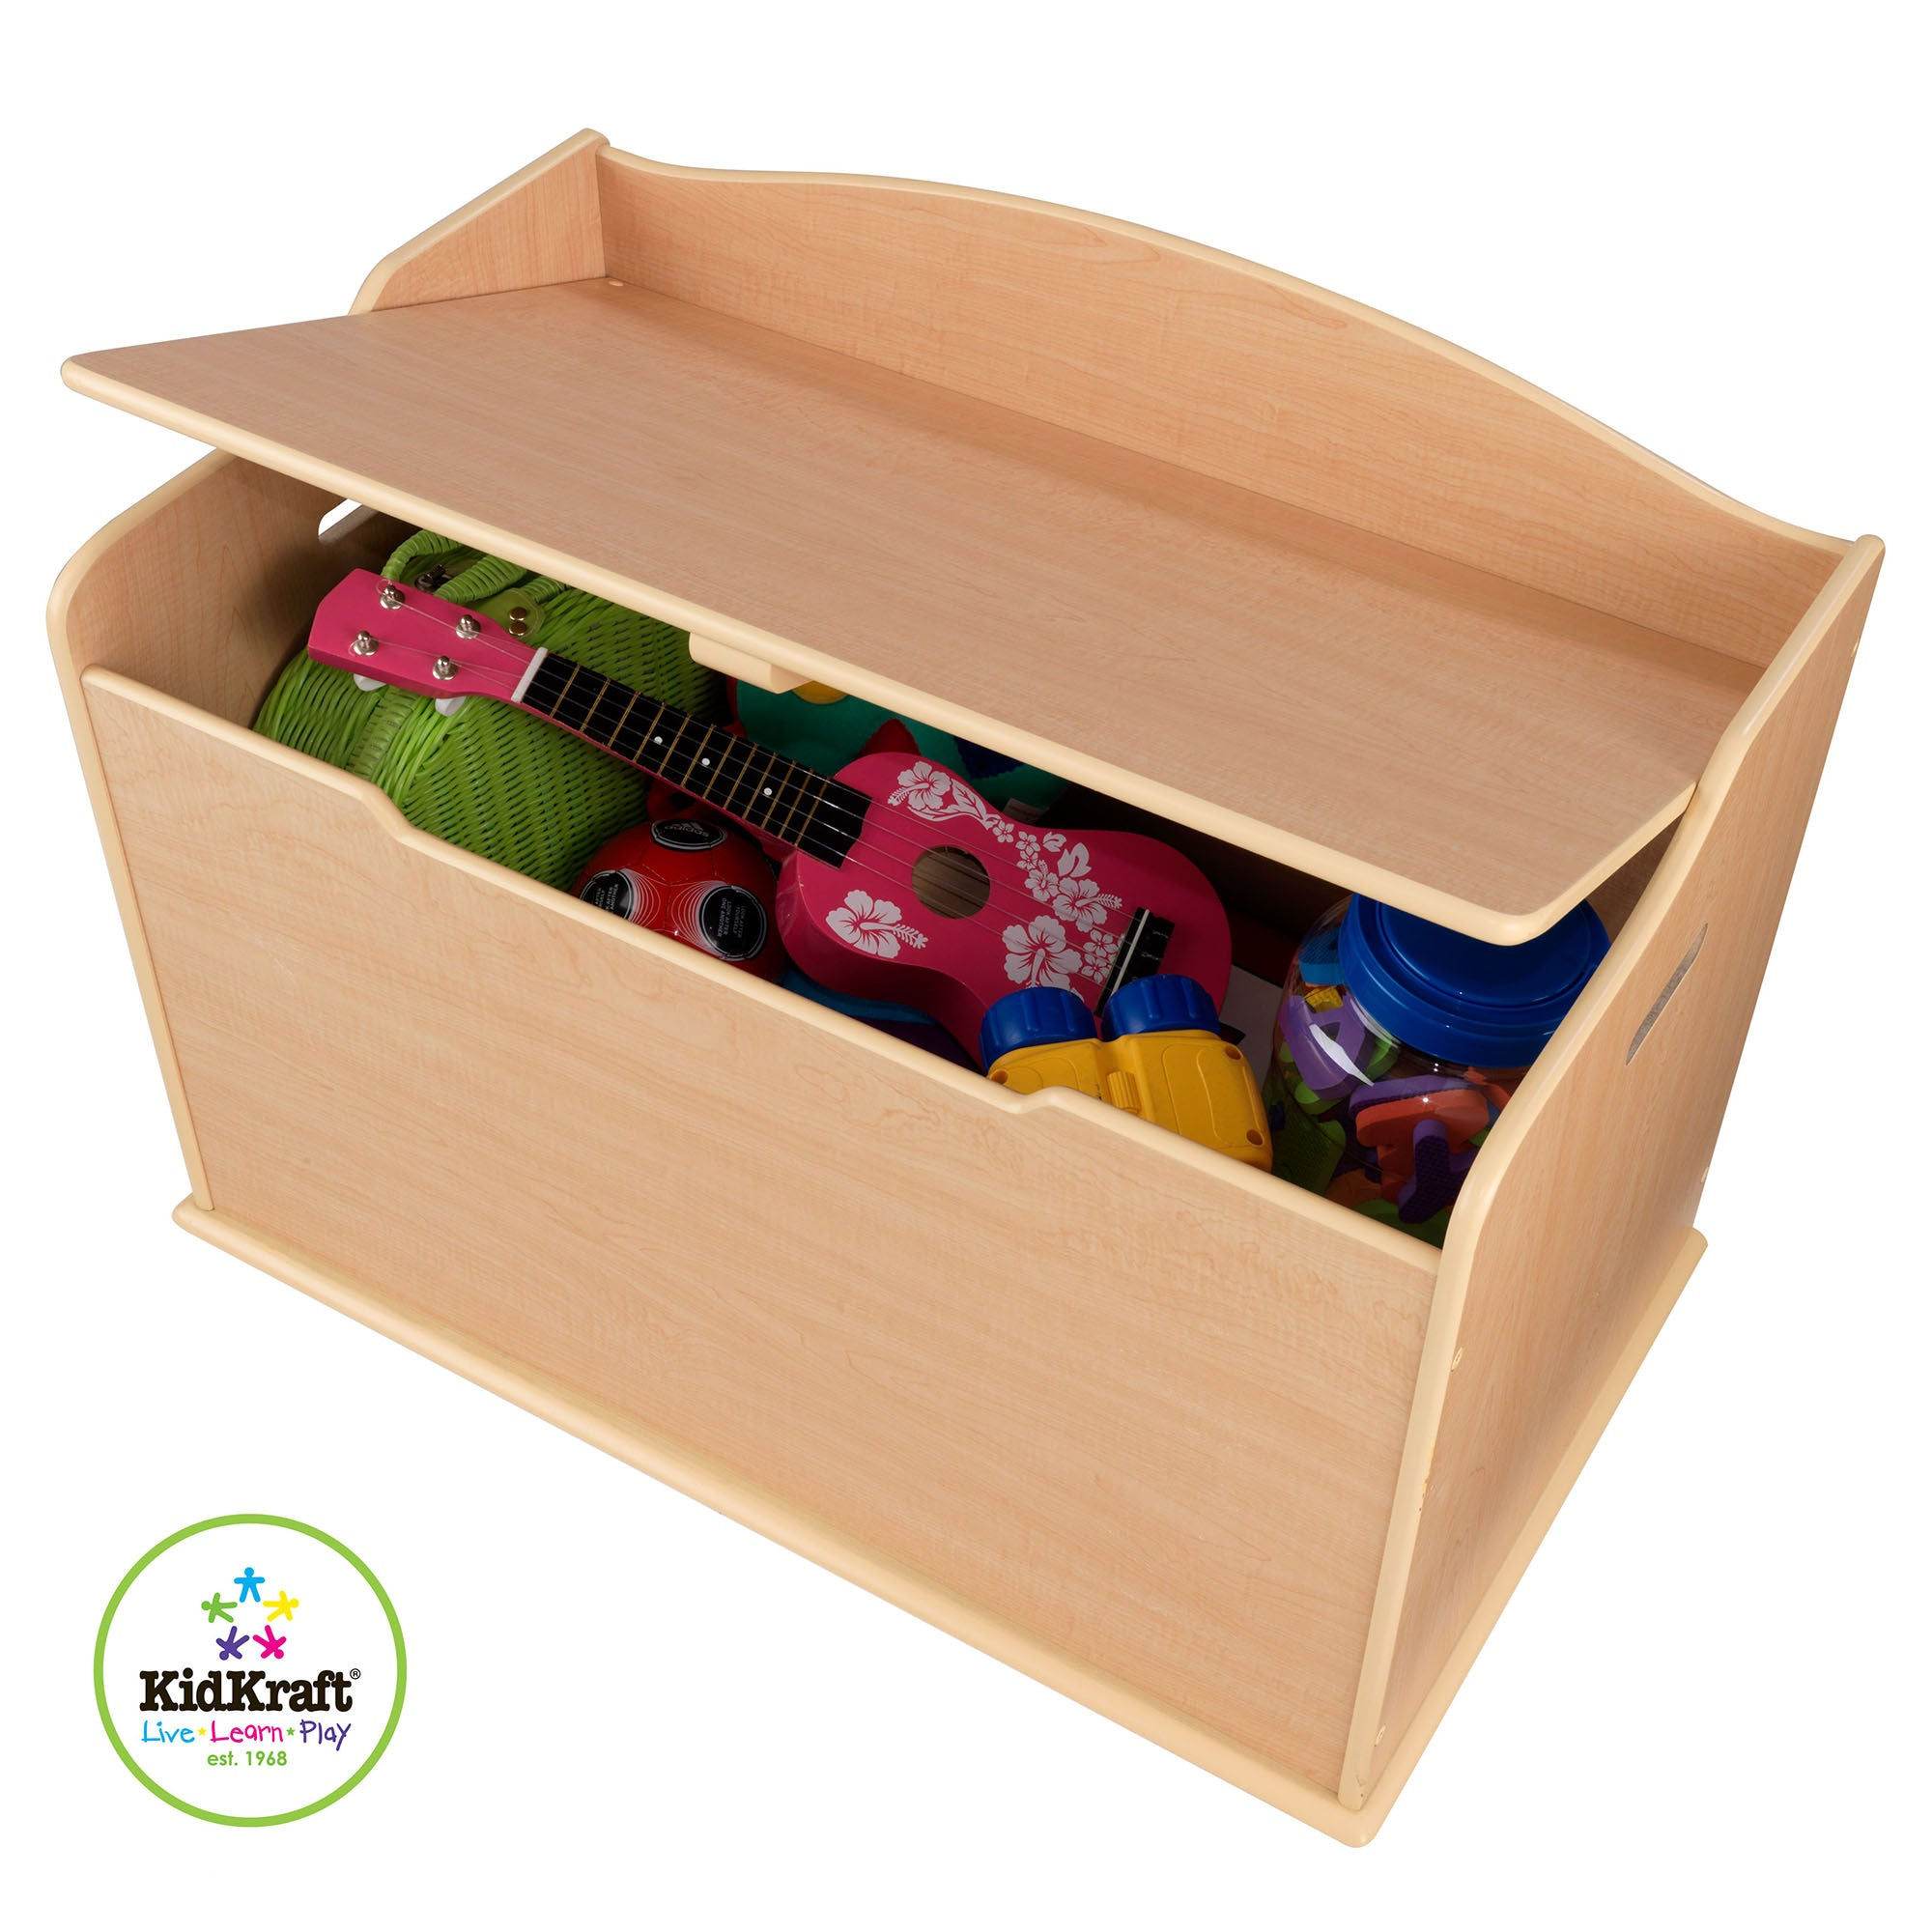 Kidkraft Austin Toy Box White   - Kidkraft - Little Earth Nest - 3